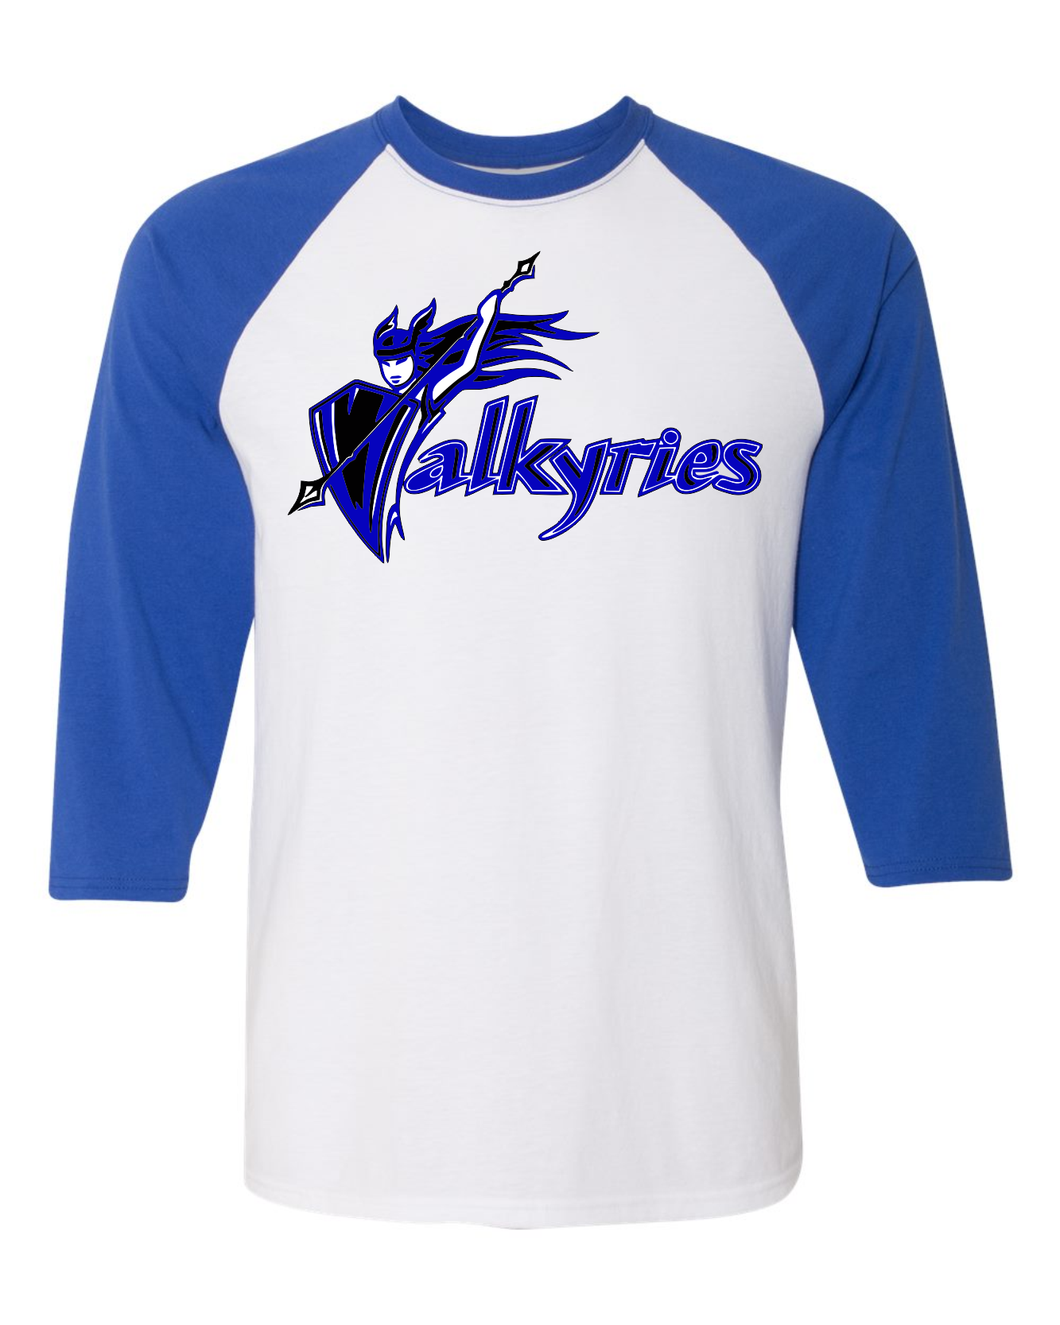 River City Valkyrie 3/4 Sleeve Baseball Tee